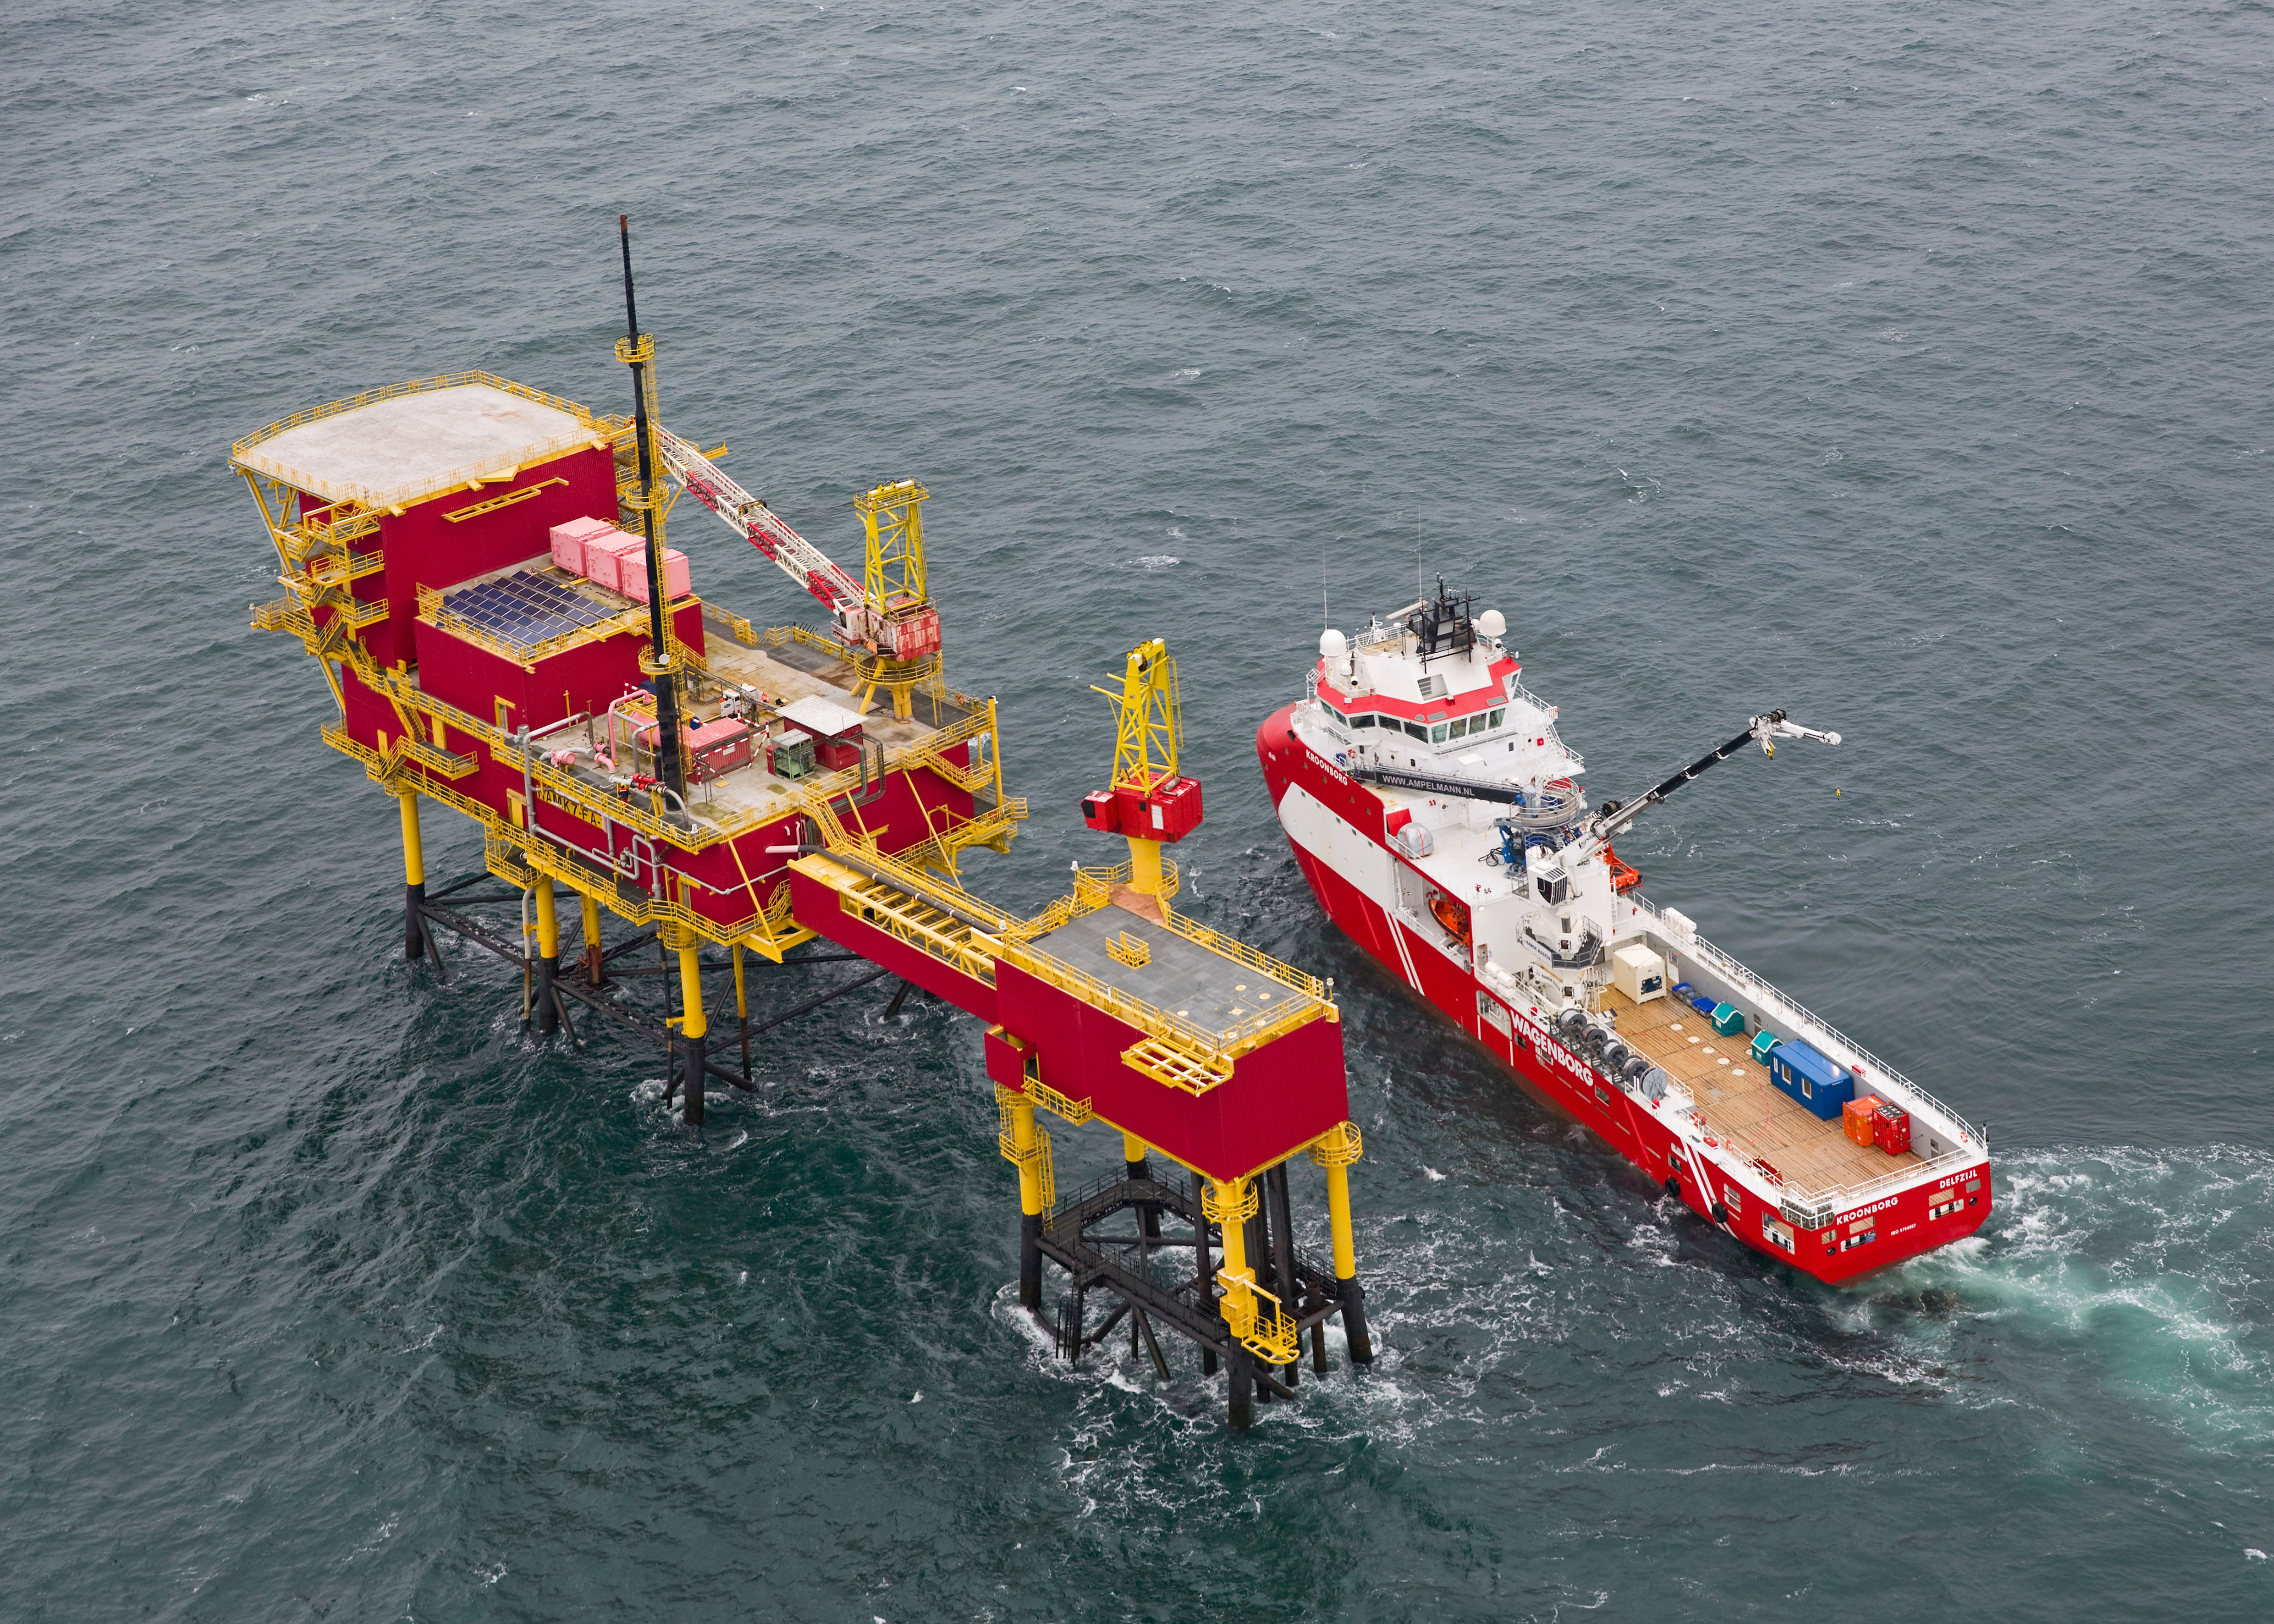 Read Press release: Reflex Marine presenting at Shell's Global Lifting Meeting